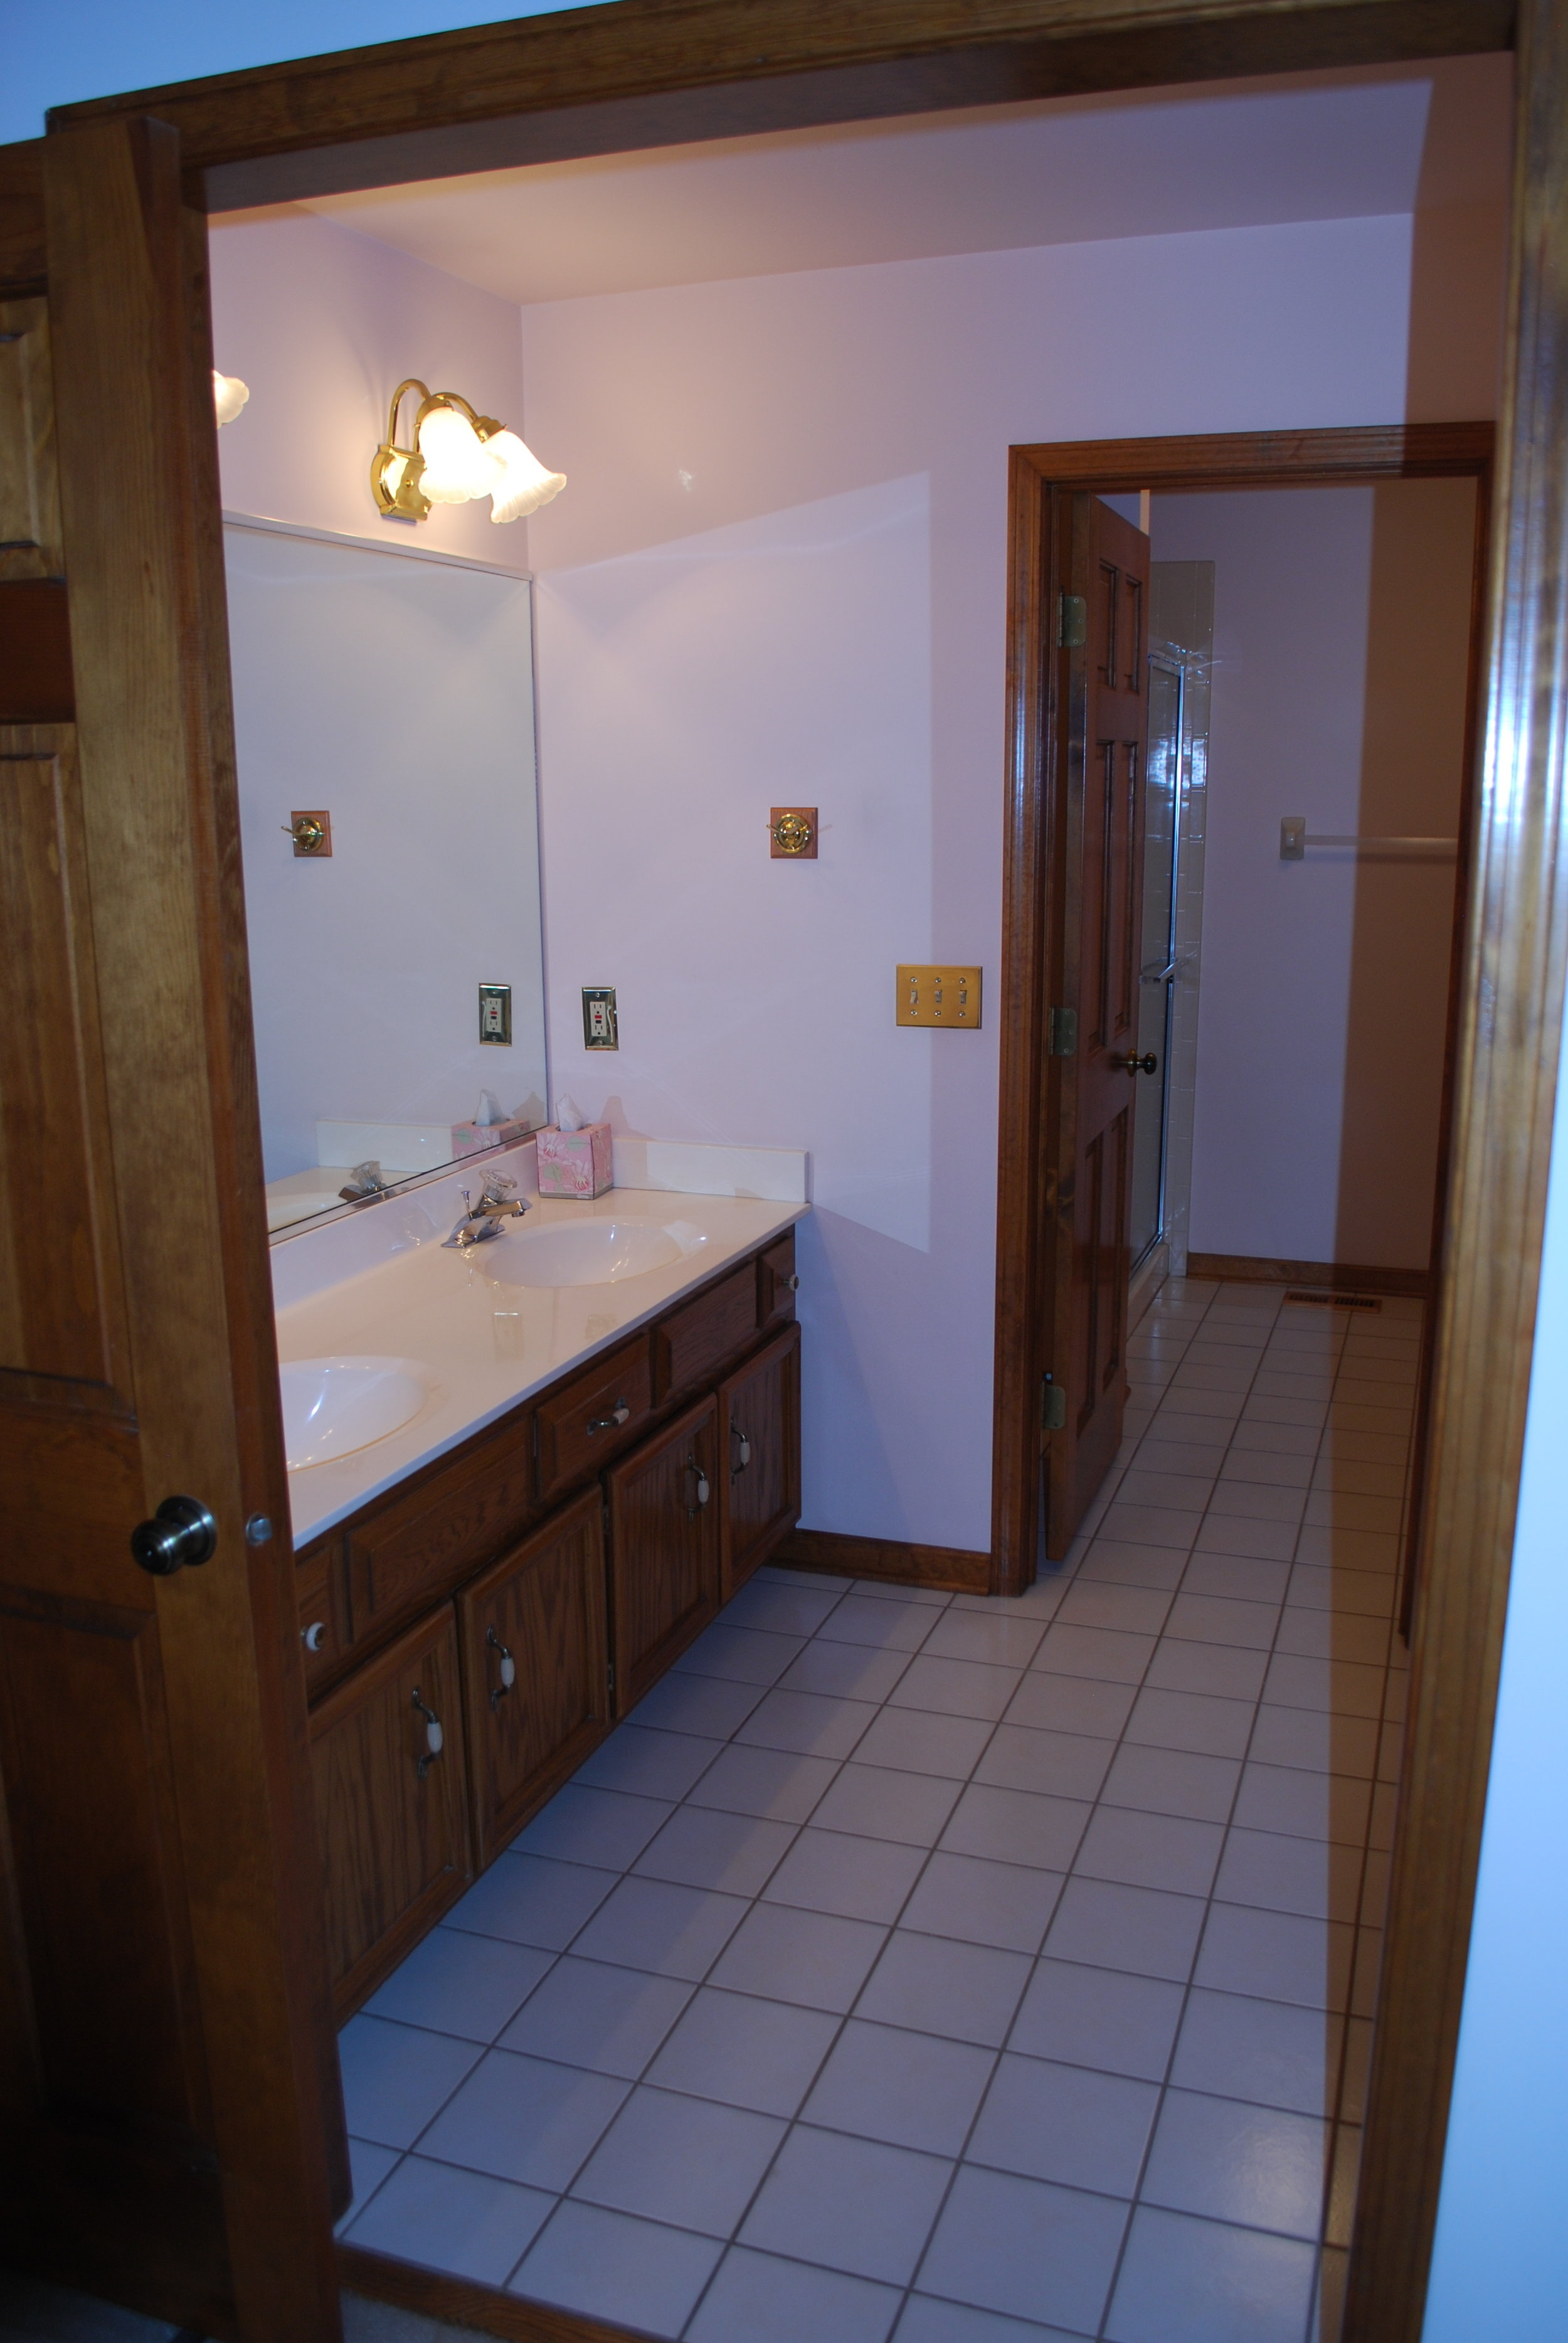 This Outdated Naperville IL Townhome Bathroom was in Need of Some Updating Before the Owner Listed the Unit for Sale with a Realtor. We Inspected the Home & Made All Repairs Before the Unit Was Listed.